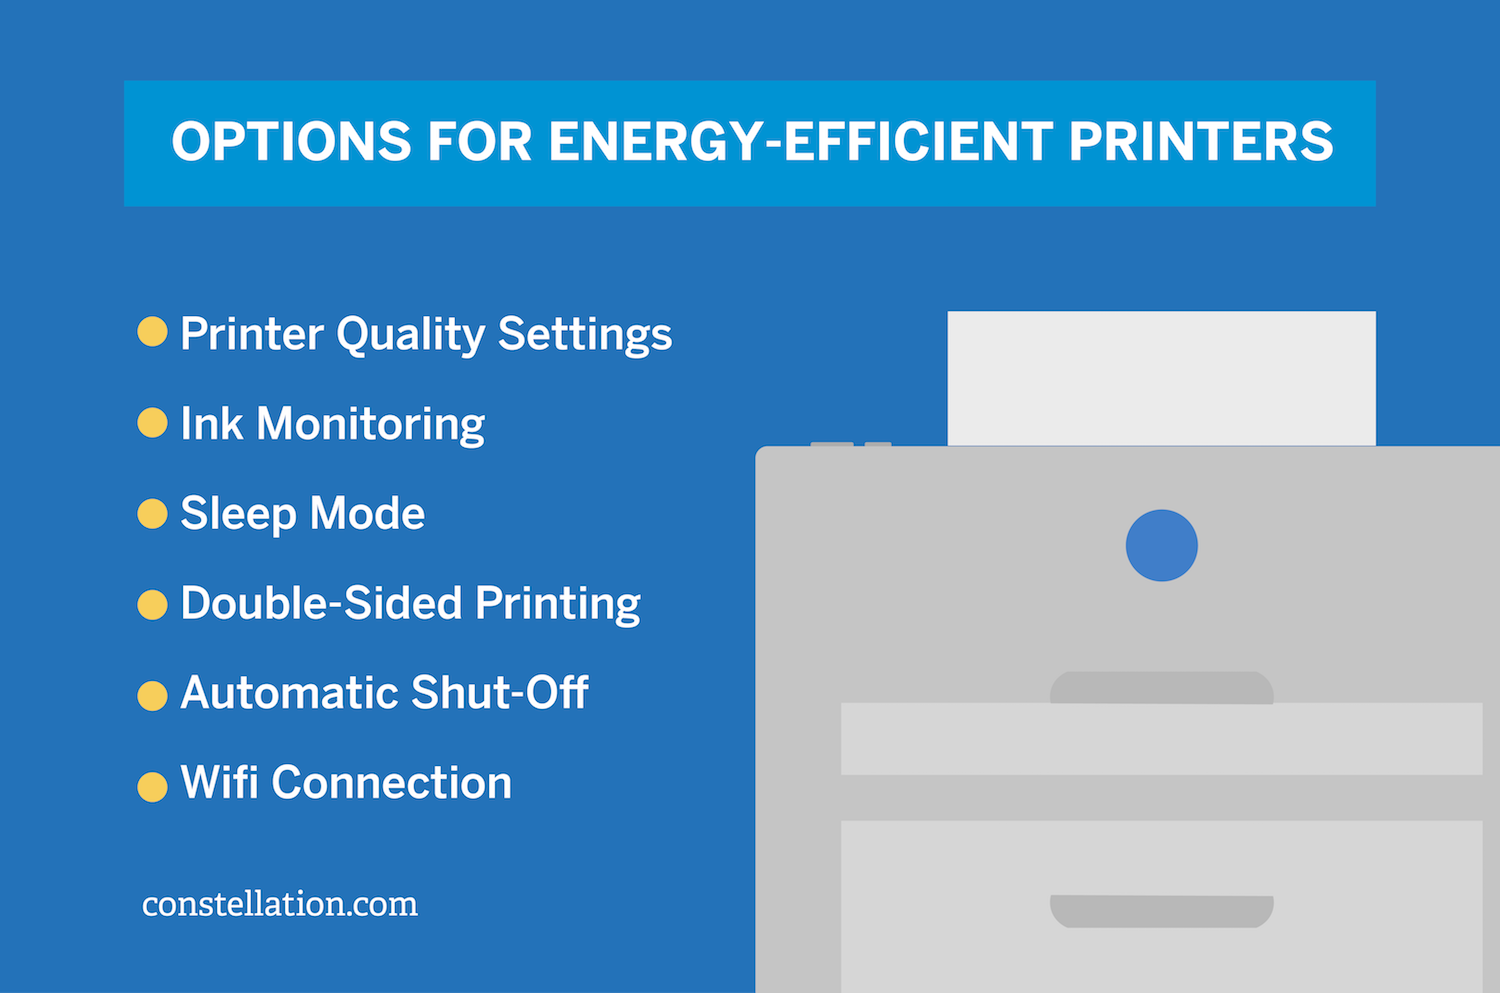 List of options for energy-efficient printers